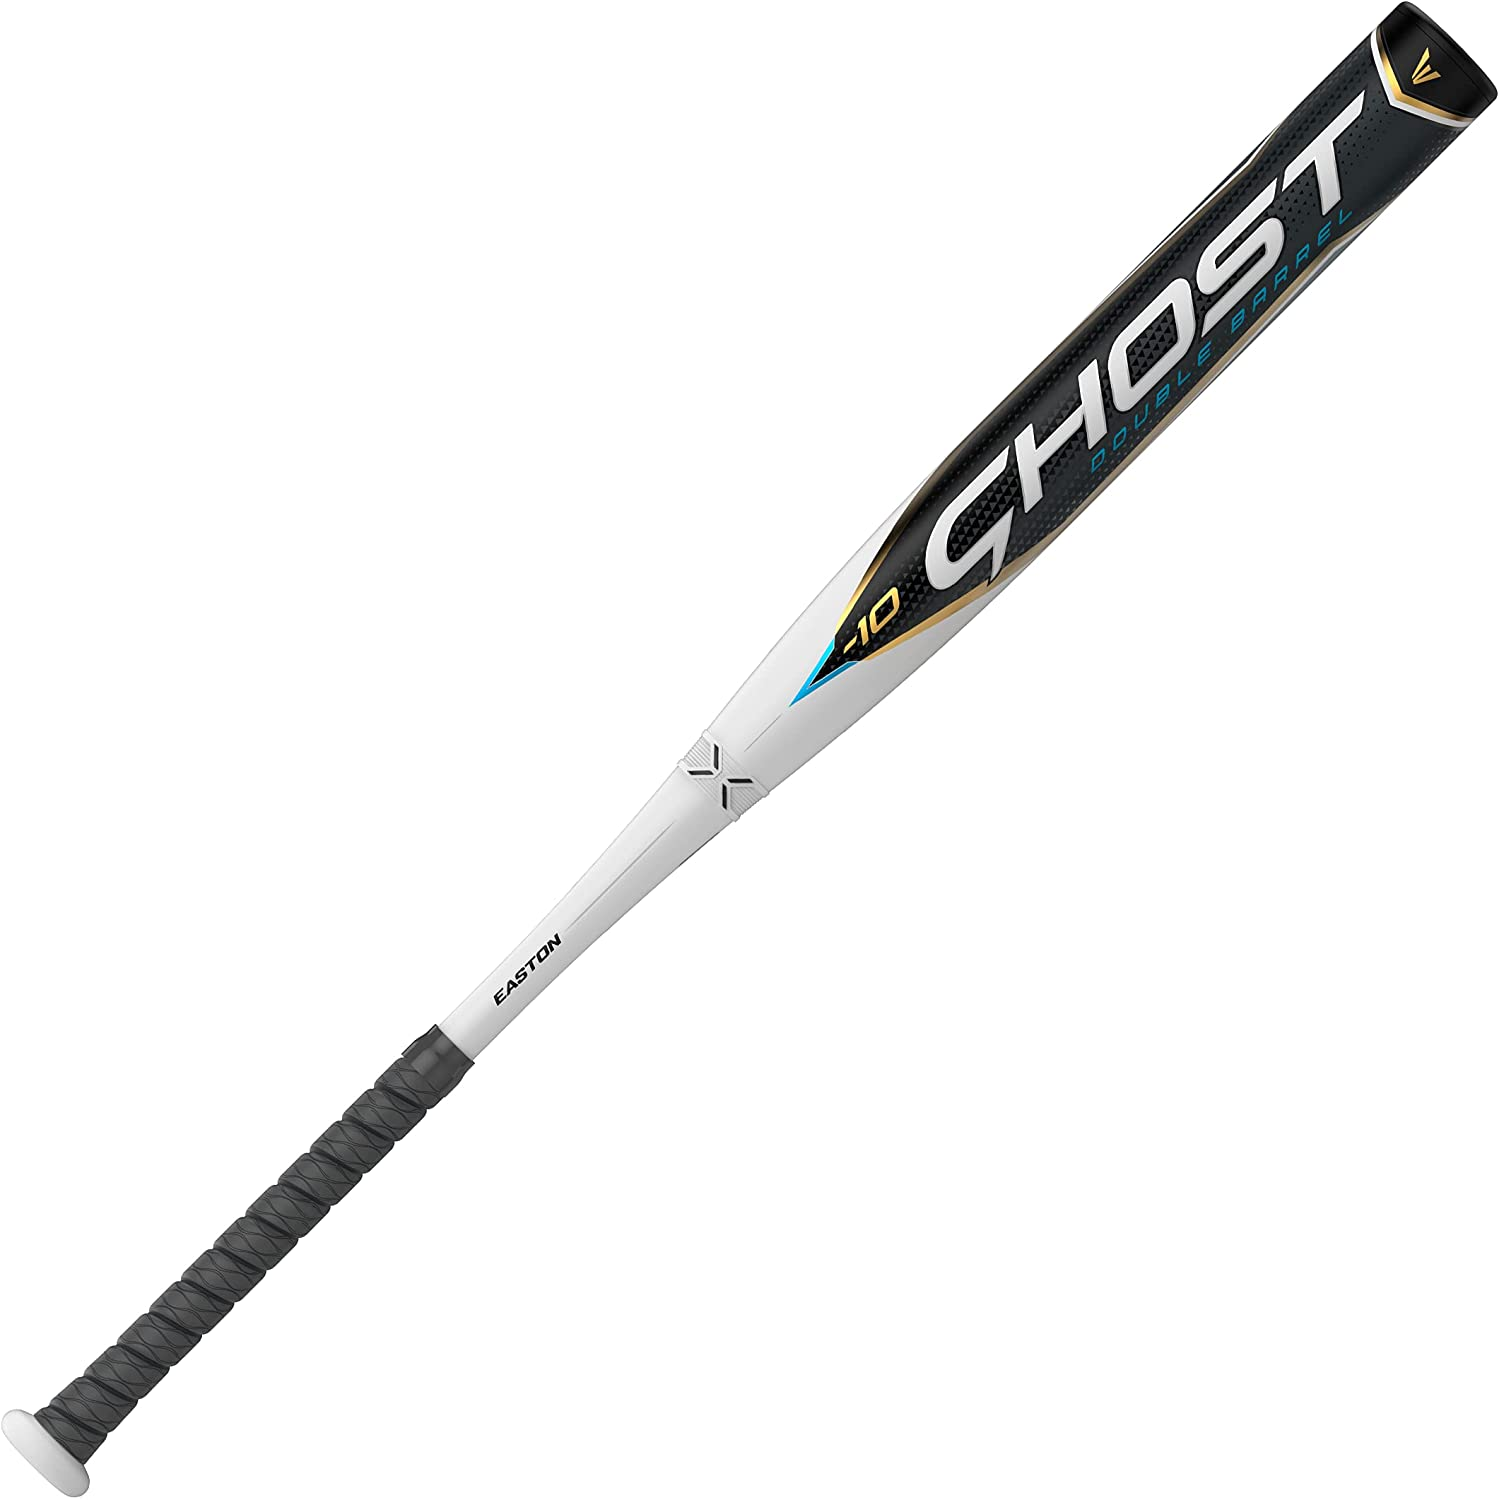 easton-2022-ghost-double-barrel-fastpitch-softball-bat-32-inch-22-oz FP22GH10-3222   <ul class=a-unordered-list a-vertical a-spacing-mini> <li><span class=a-list-item>PATENTED DOUBLE BARREL CONSTRUCTION provides the